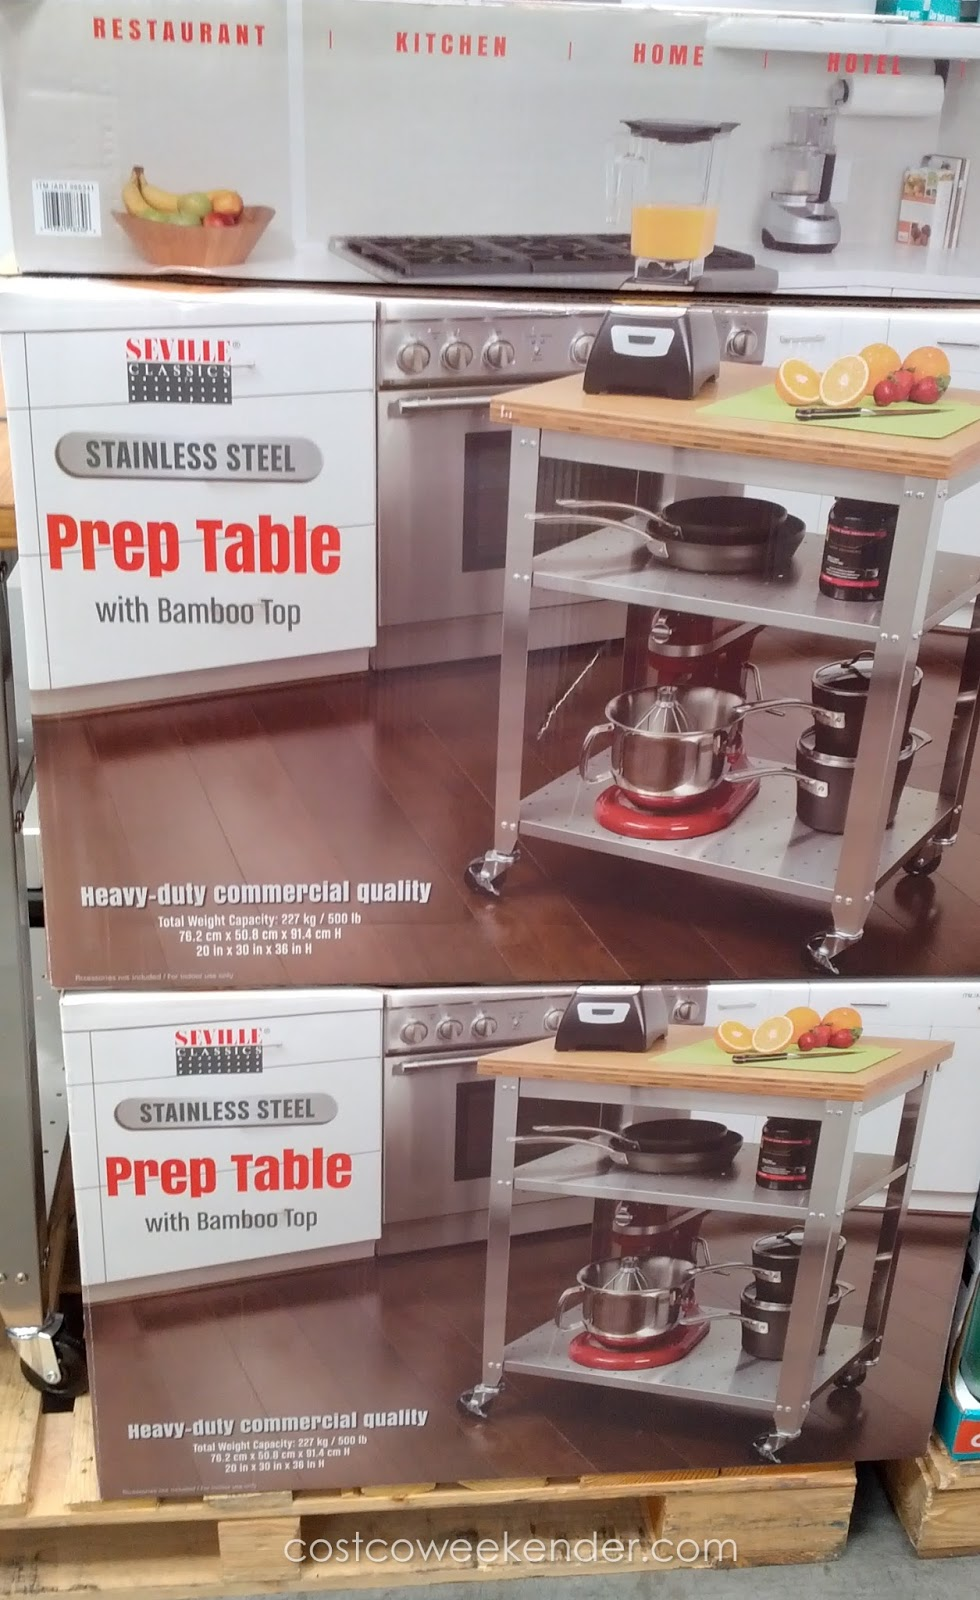 Have A Place To Do Prep Work In The Kitchen With Seville Clics Stainless Steel